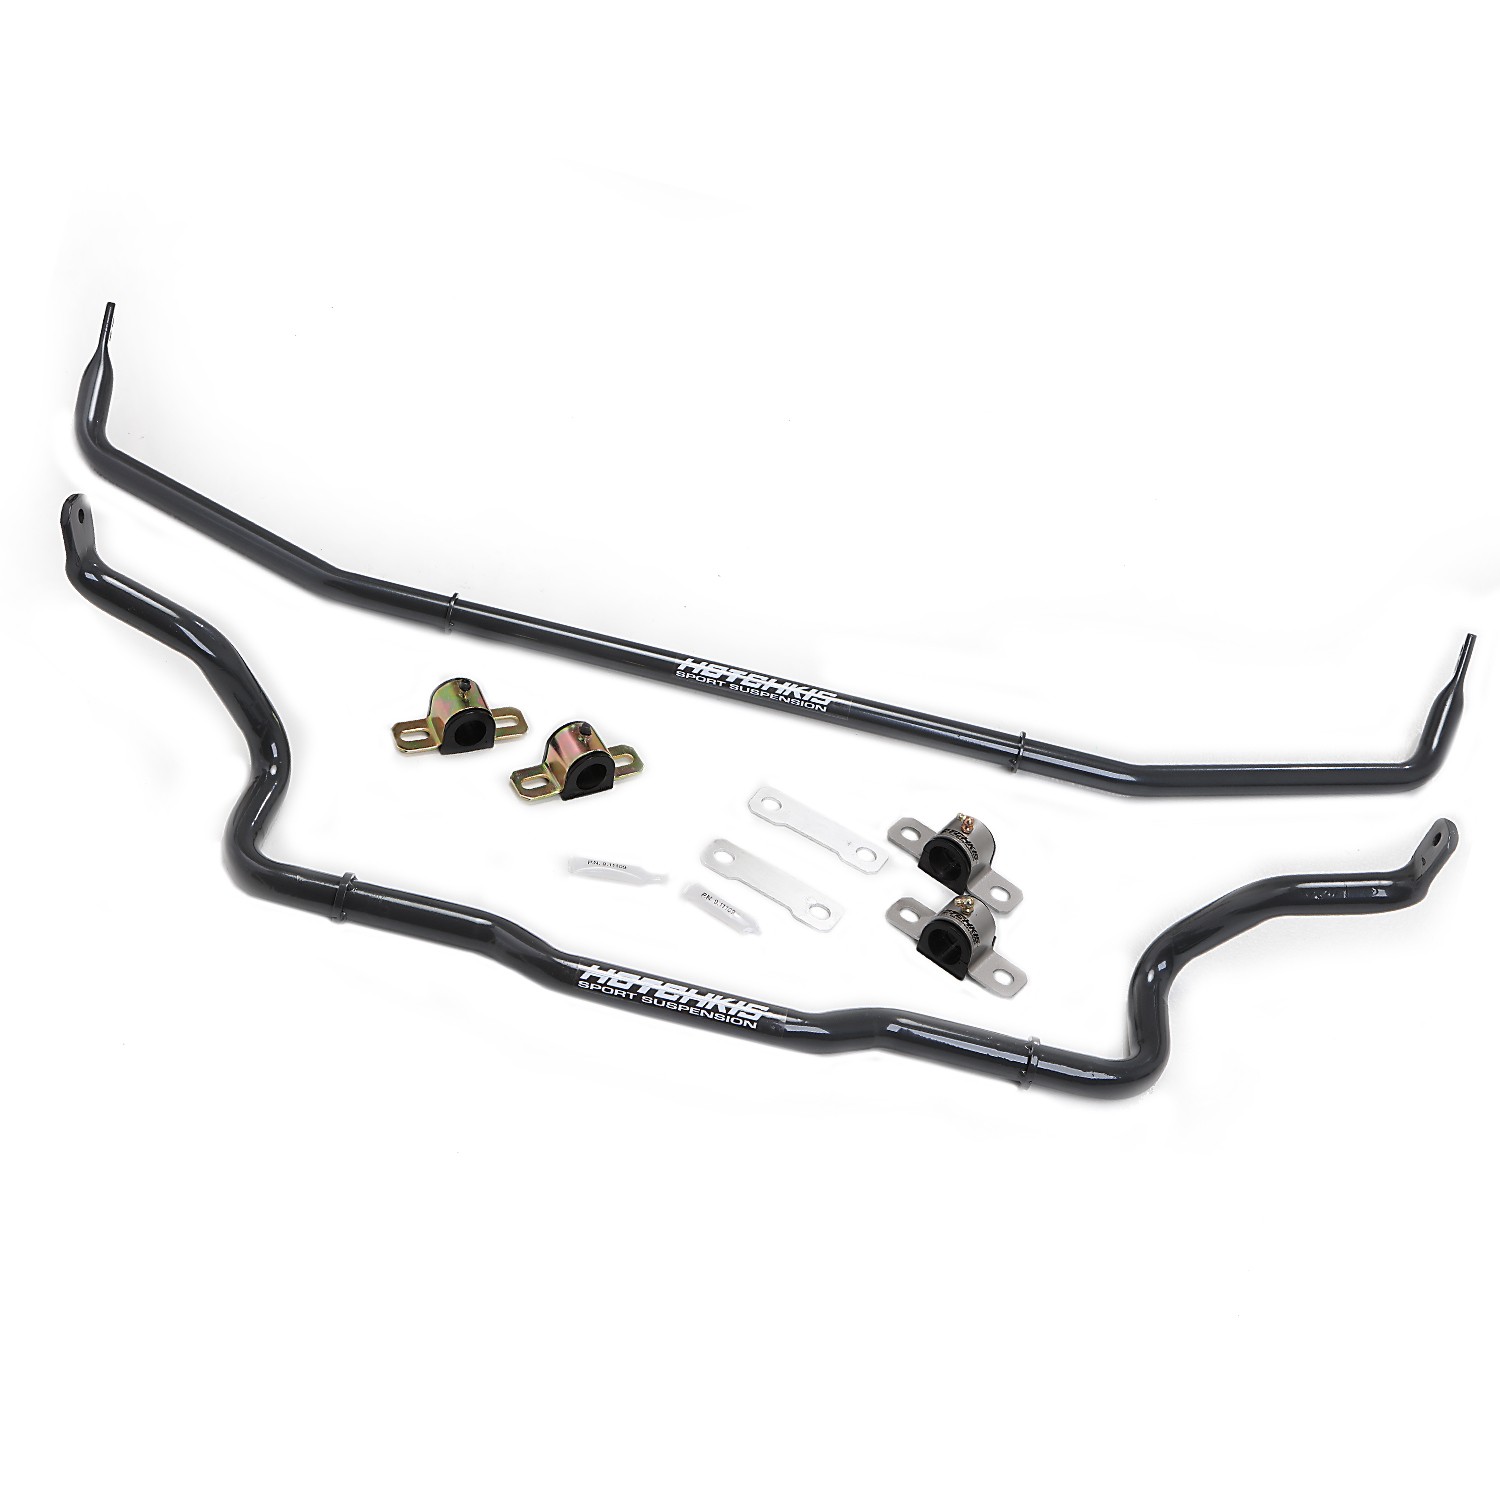 2013+ Ford Focus ST Sport Sway Bar Set from Hotchkis Sport Suspension